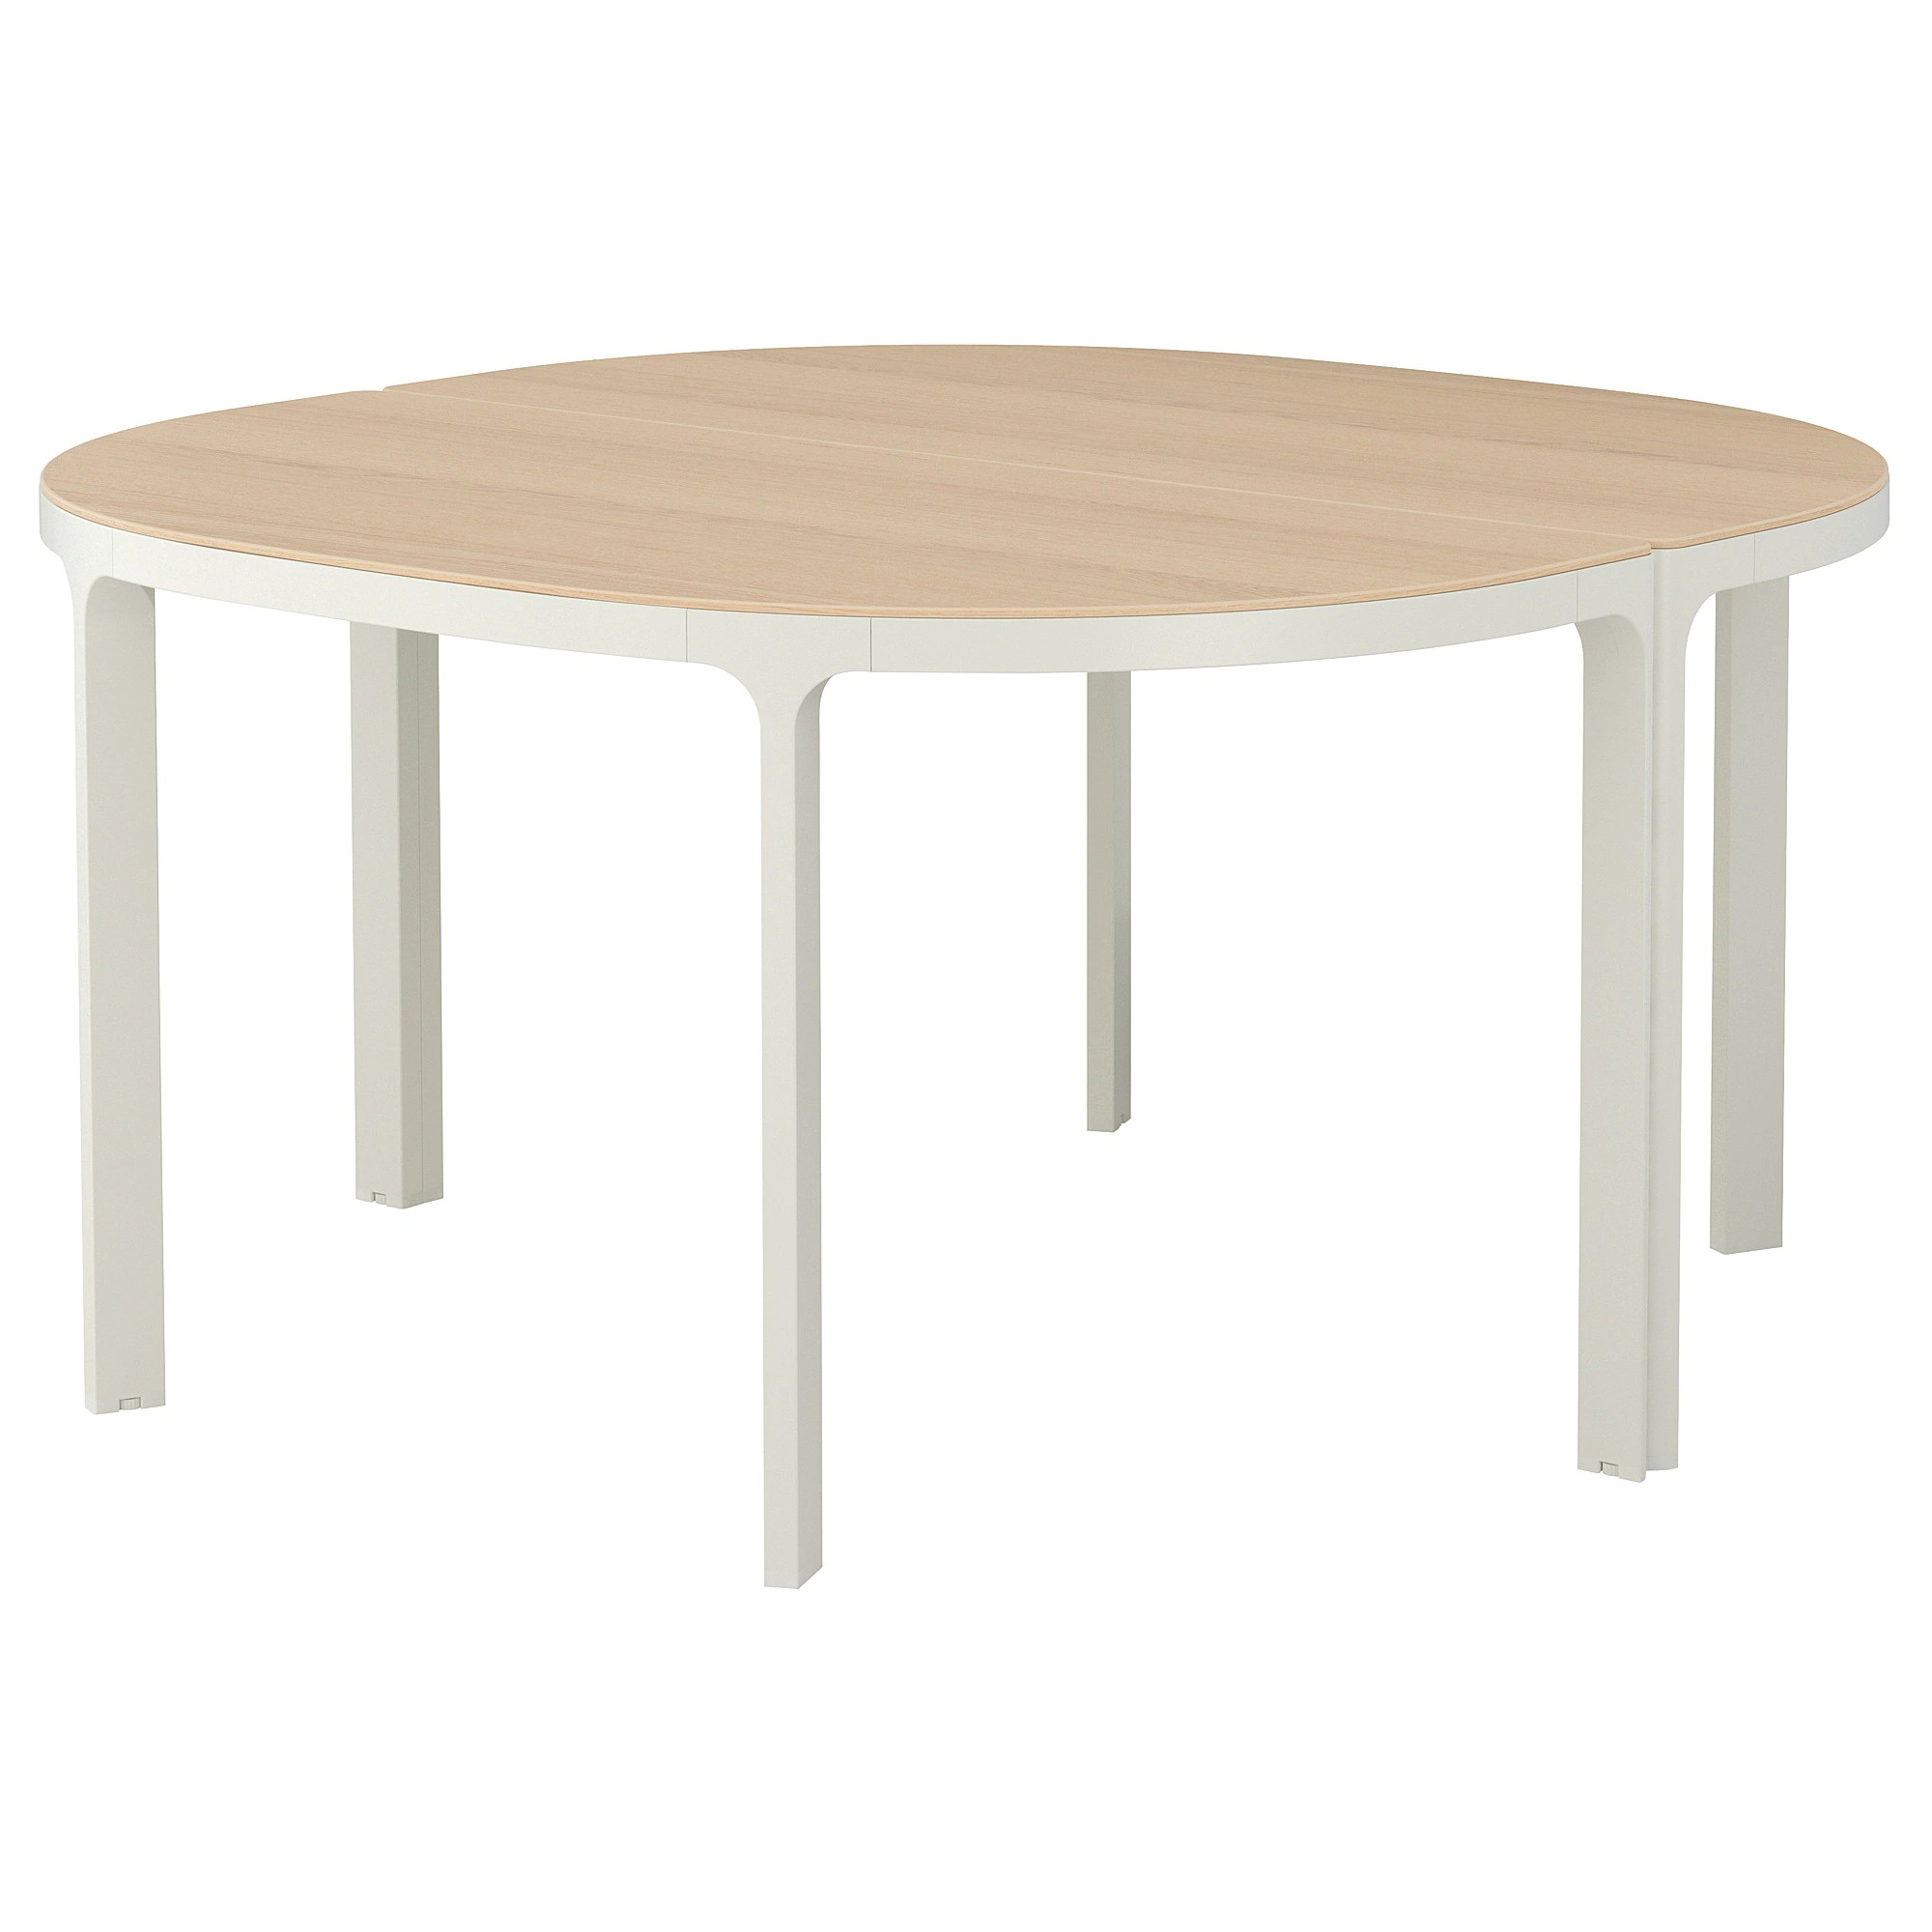 Table 140 Conference Table Bekant White Stained Oak Veneer White